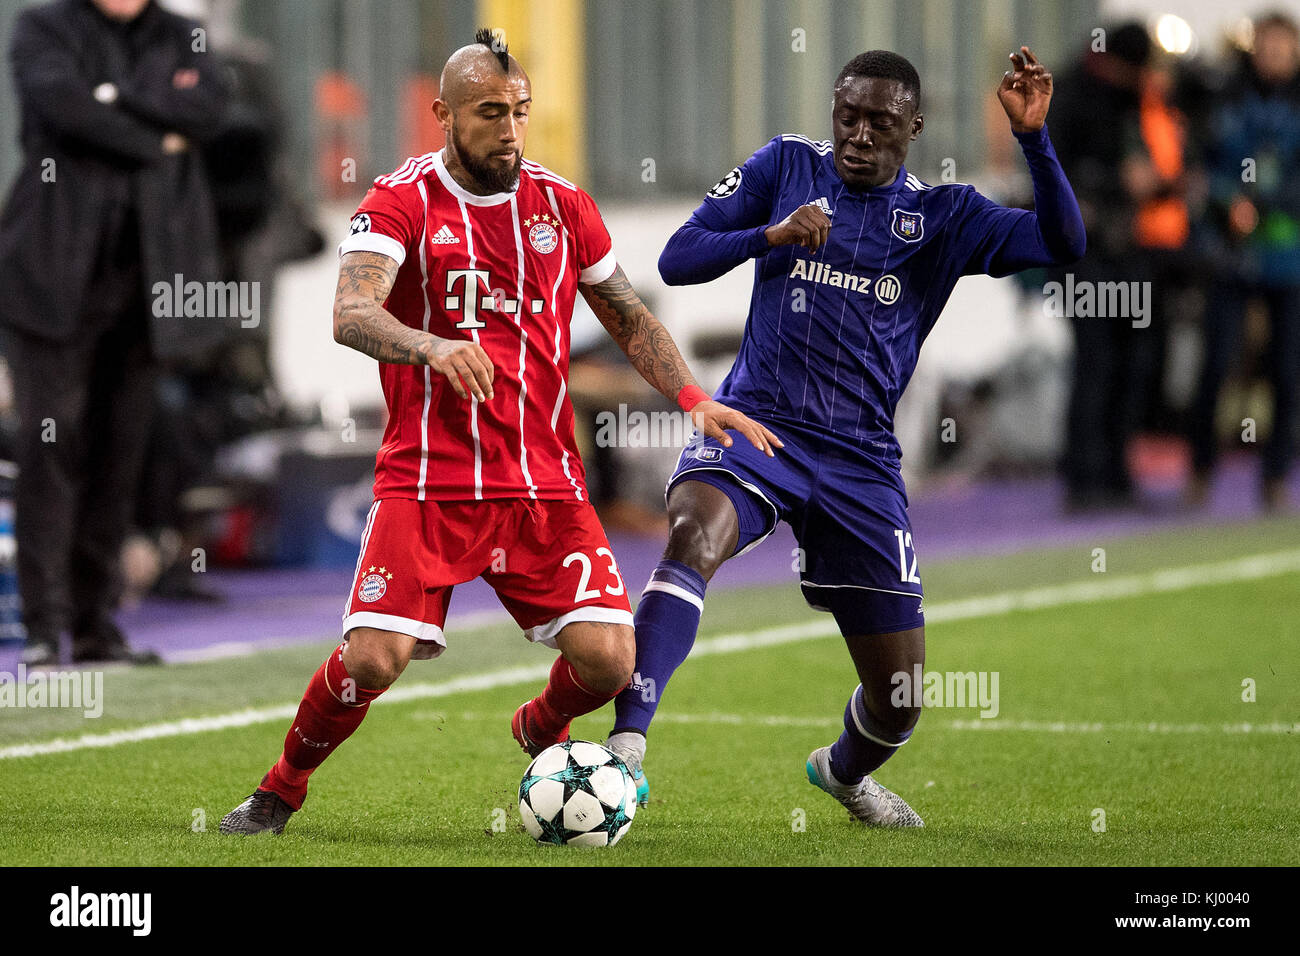 Munich's Arturo Vidal (L) and Anderlecht's Dennis Appiah vie for the ball during the Champions League soccer - Stock Image